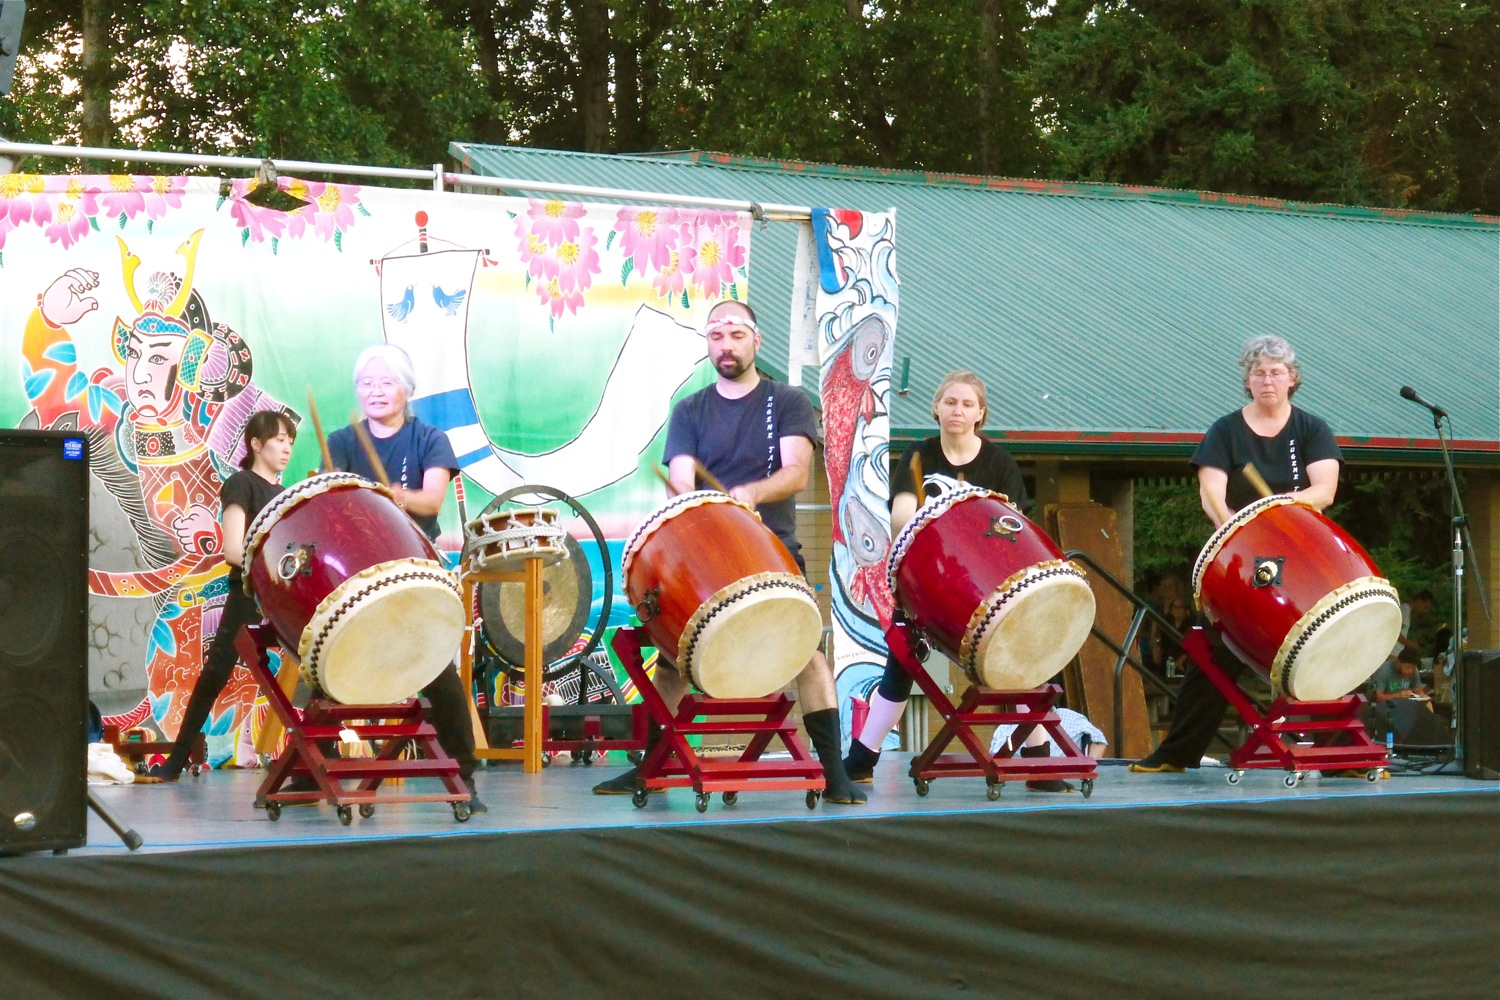 Eugene Oregon Obon & Taiko Festival 2018, Bon Odori Taiko Festival Eugene Oregon 2018, Obon Festival Eugene Oregon, Japanese American Association of Lane County, Eugene Taiko Eugene Oregon, Under The Plum Blossom Tree at Obon & Taiko Festival, Eugene Obon & Taiko Festival Alton Baker Park Eugene Oregon, Obon Festival Alton Baker Park Eugene, Eugene Taiko Alton Baker Park Eugene Oregon